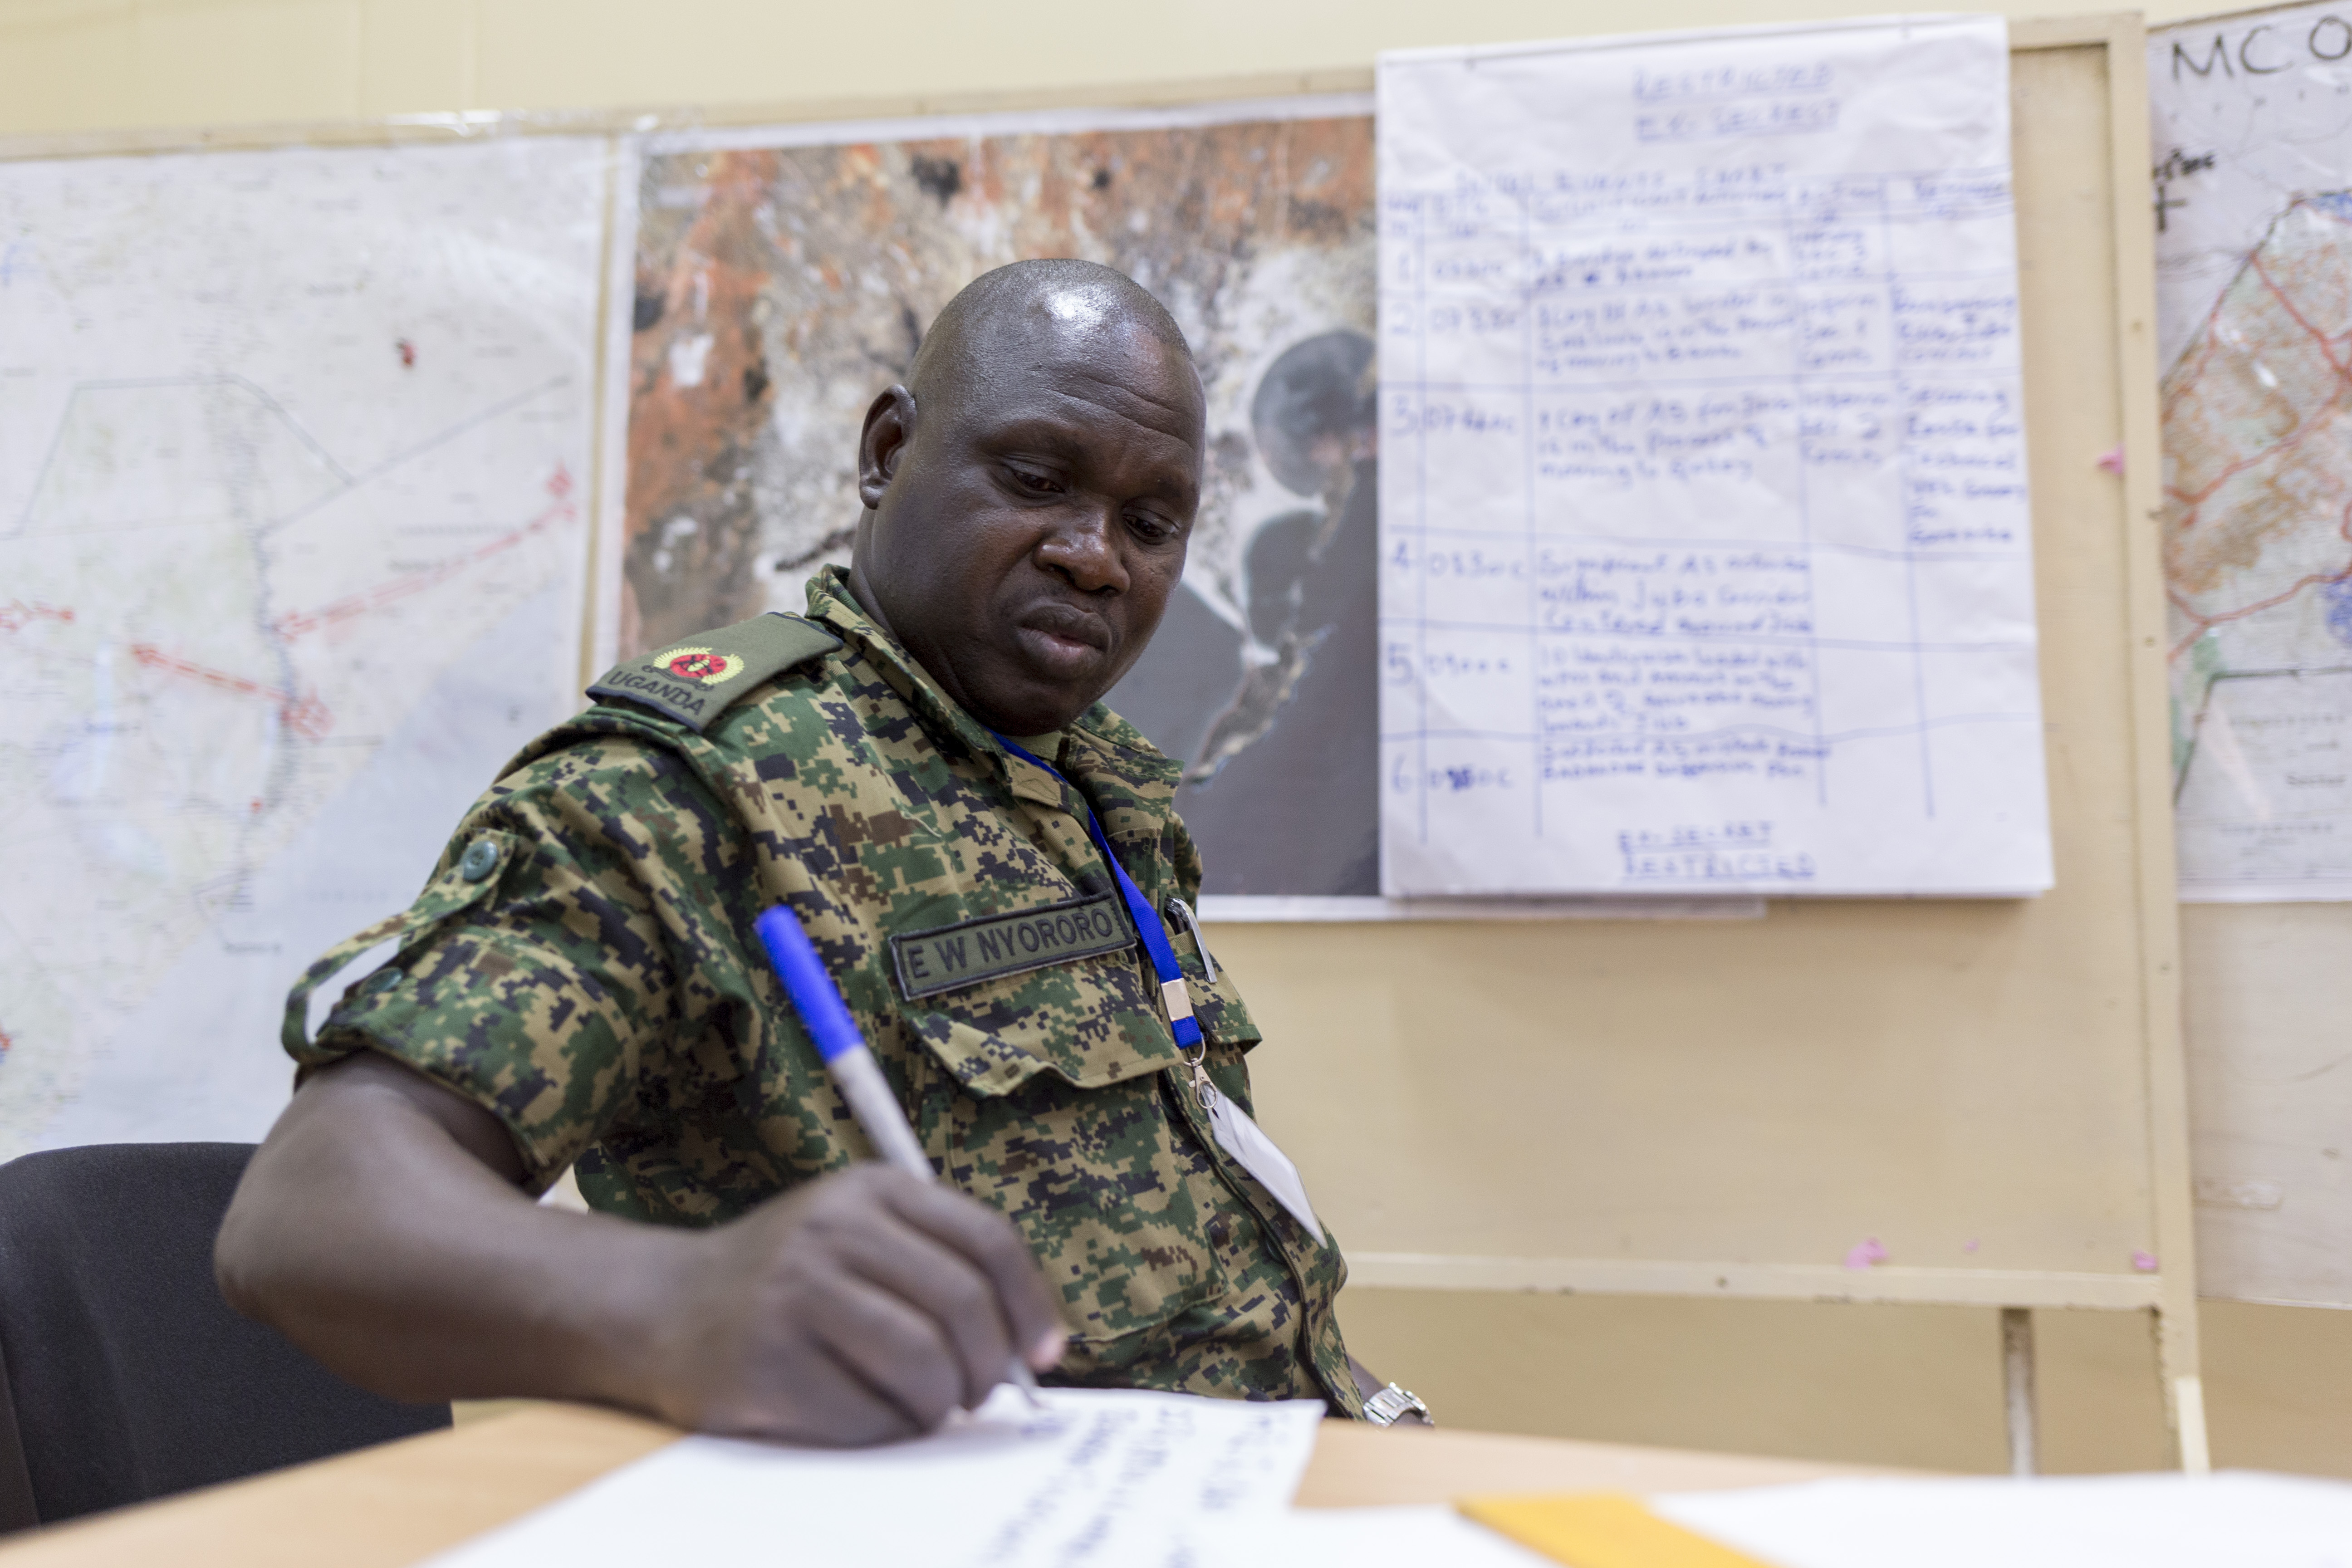 Uganda People's Defence Force Maj. E.W. Nyororo serves as a member of the logistics cell, preparing information to be presented in the daily commander update brief in response to simulated events during the command post exercise of the Africa Contingency Operations Training and Assistance force headquarters program held at the Humanitarian Peace Support School in Nairobi, Kenya, March 9, 2017. The five-week course was facilitated by the U.S. Department of State and is designed to improve Africa's military capabilities by providing selected training necessary for multinational peace support operations. (U.S. Army photo by Capt. Alán Ortiz)